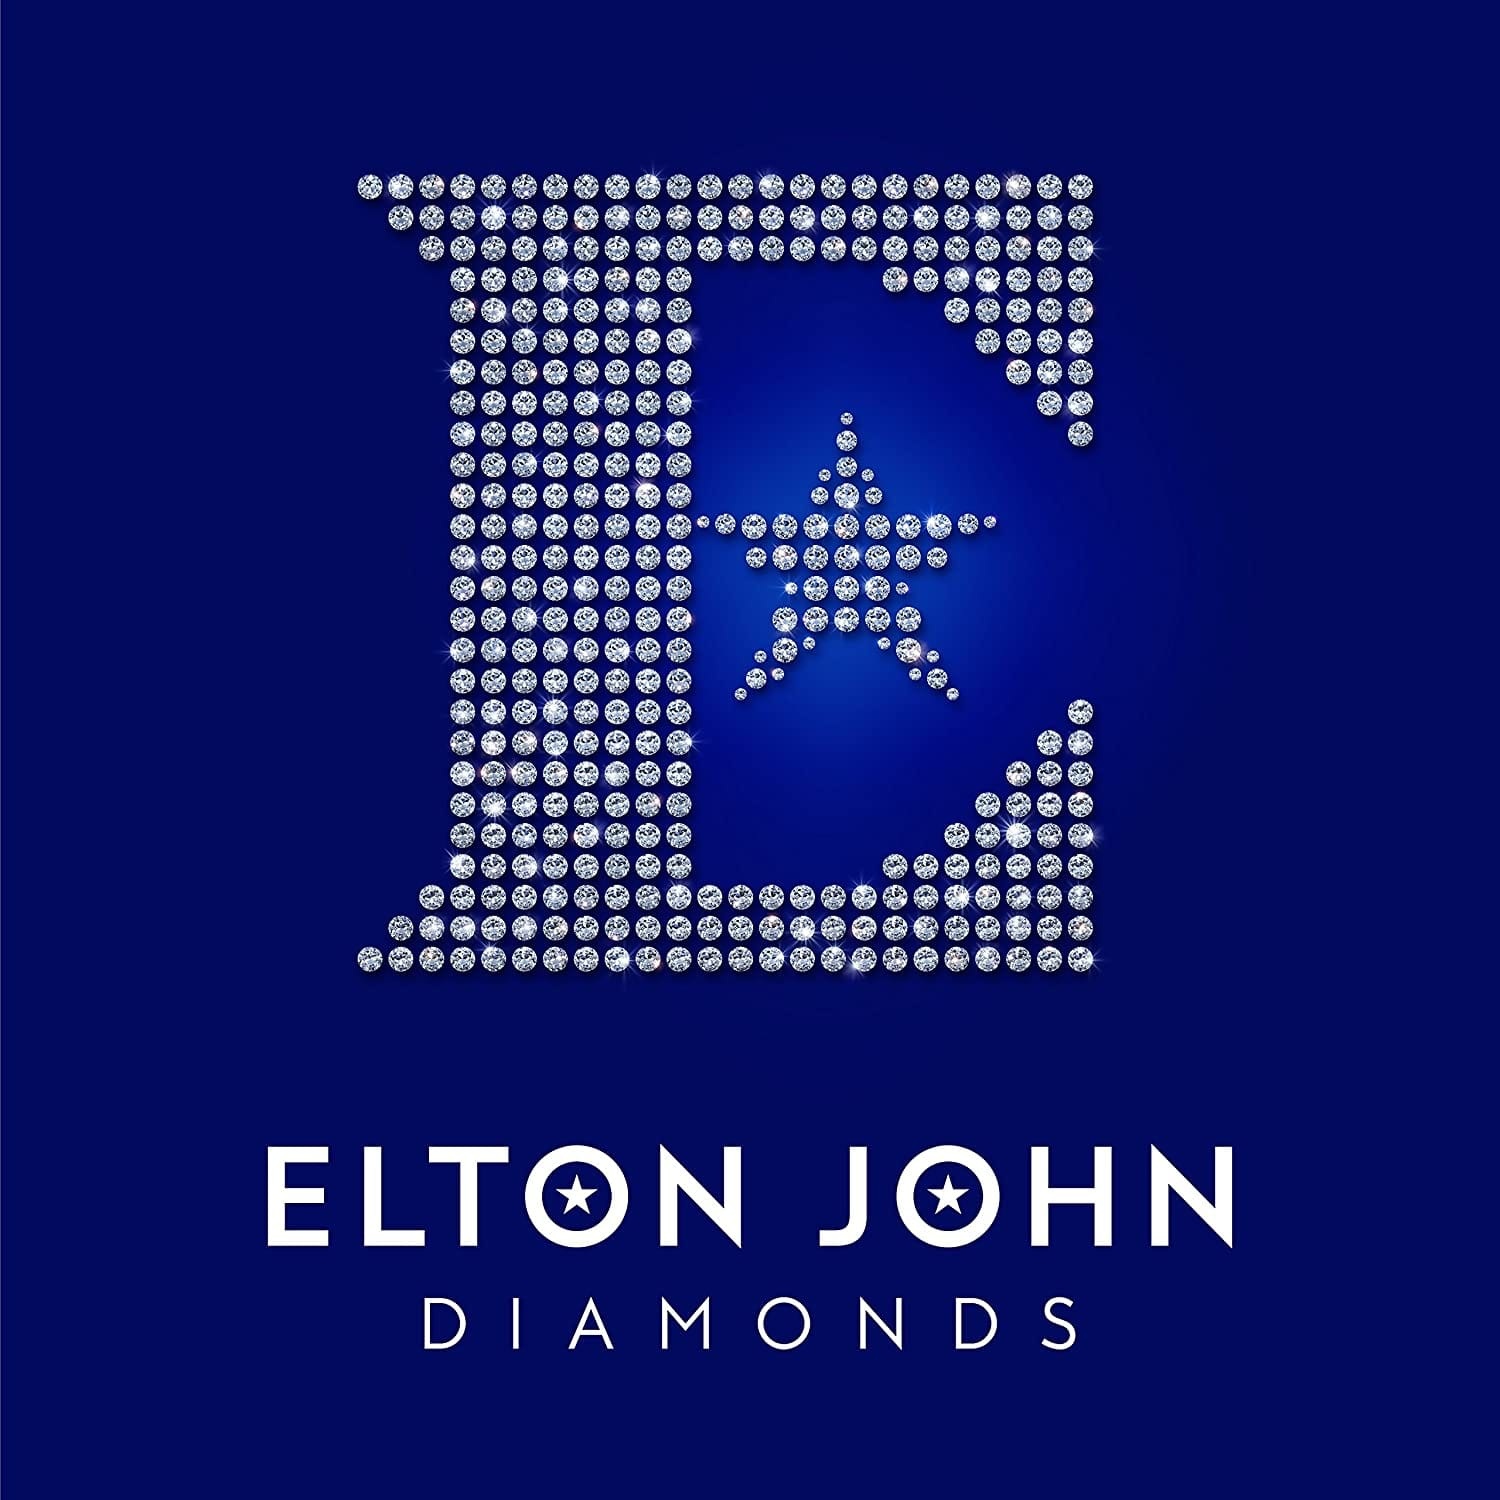 Elton John: Diamonds (Double Vinyl) $16.80 ~ Amazon